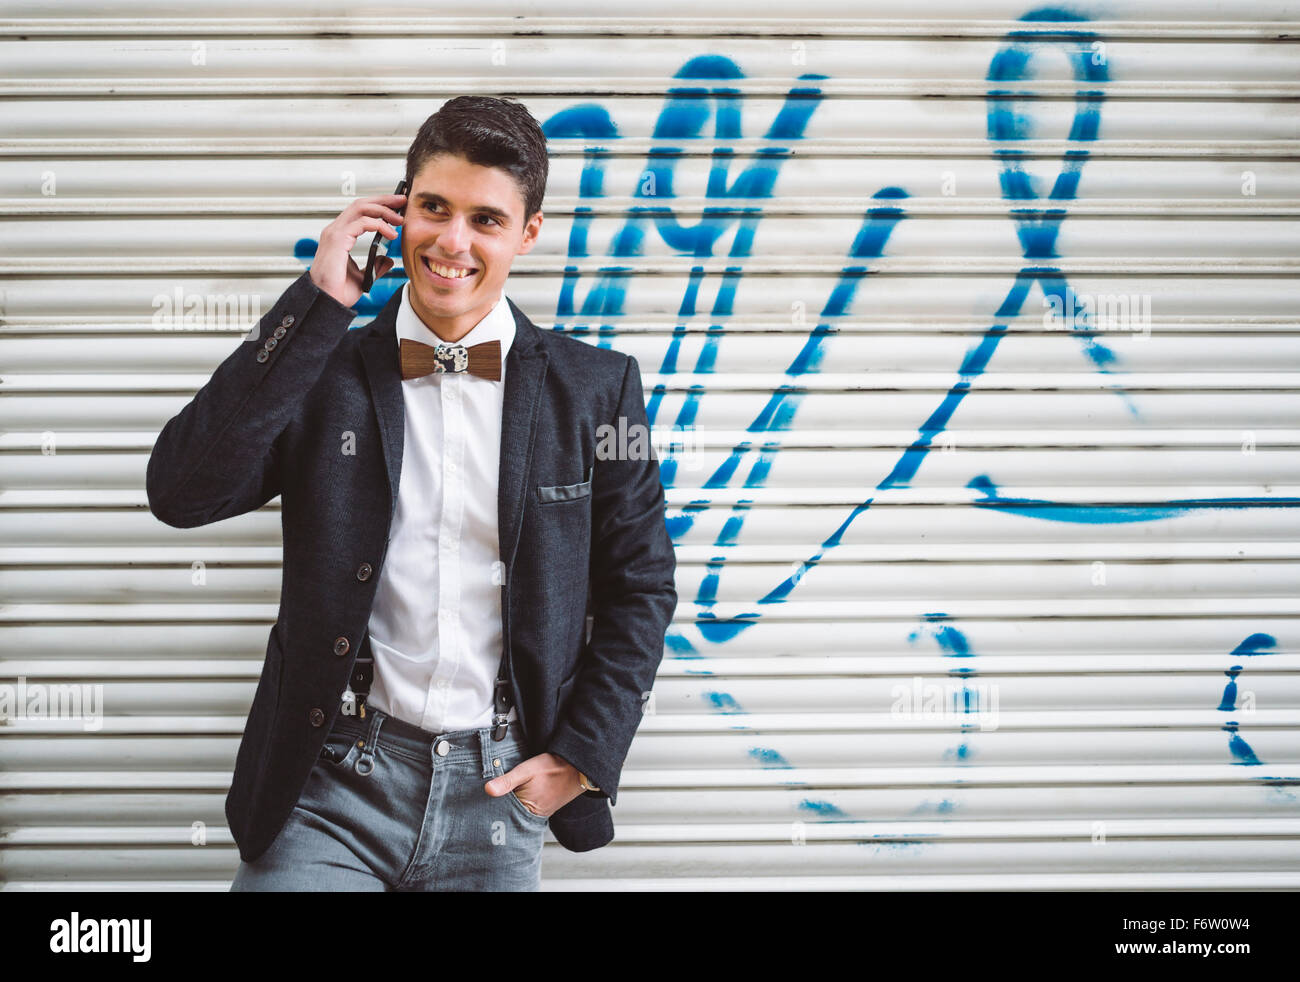 Young man on the phone wearing jacket and a wooden bow tie - Stock Image